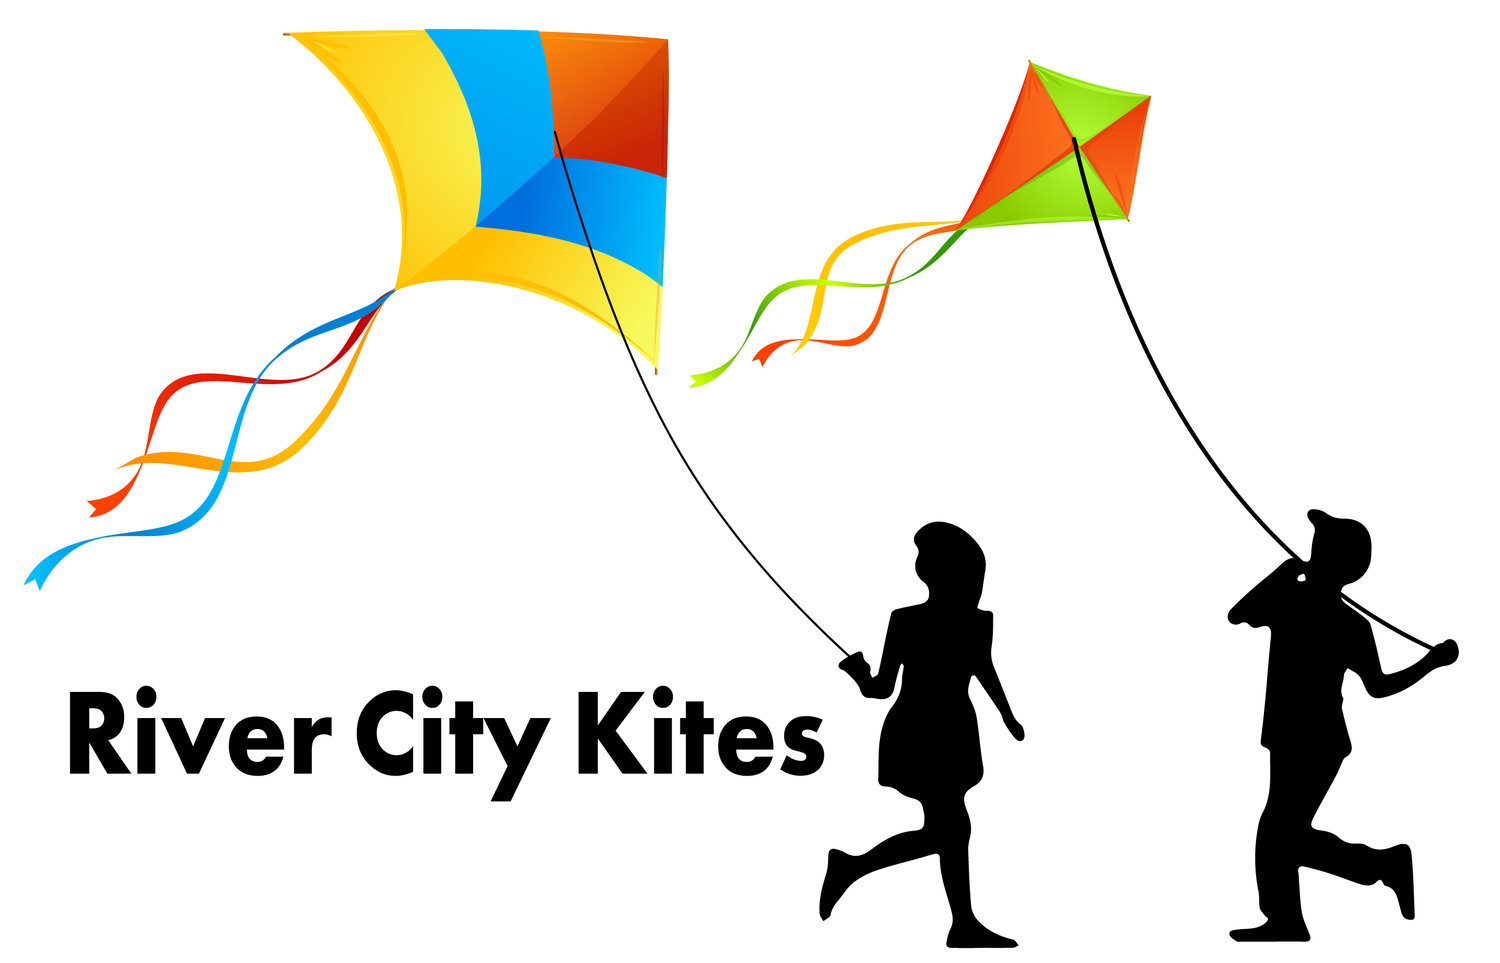 River City Kites